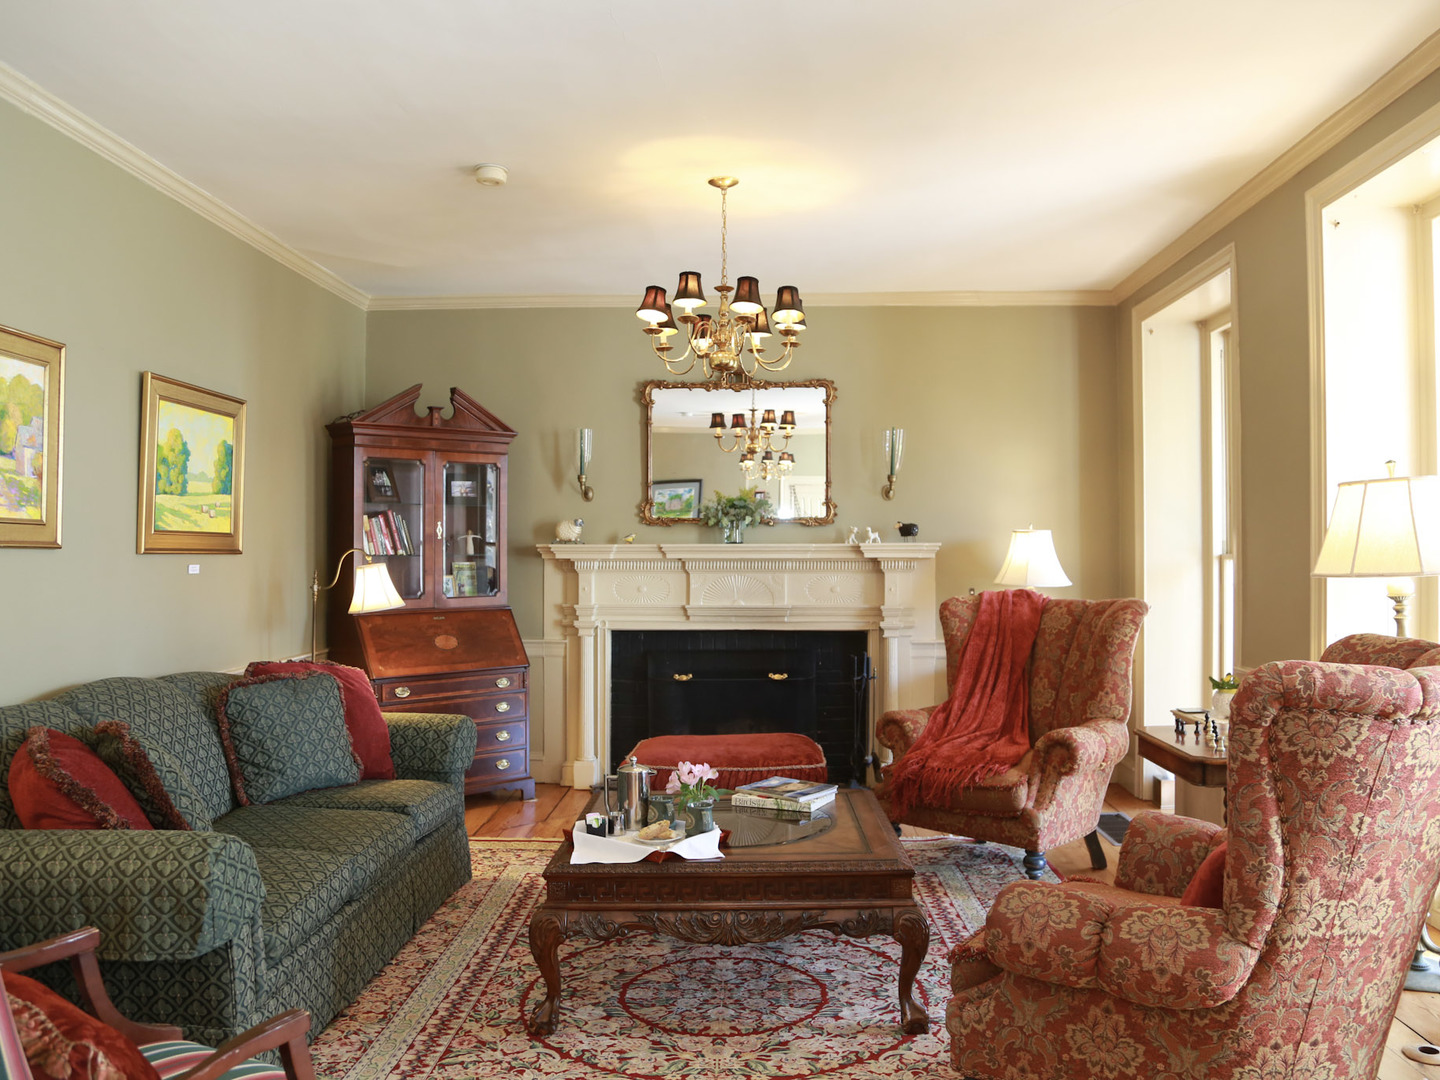 A living room filled with furniture and a fire place at Woolverton Inn.